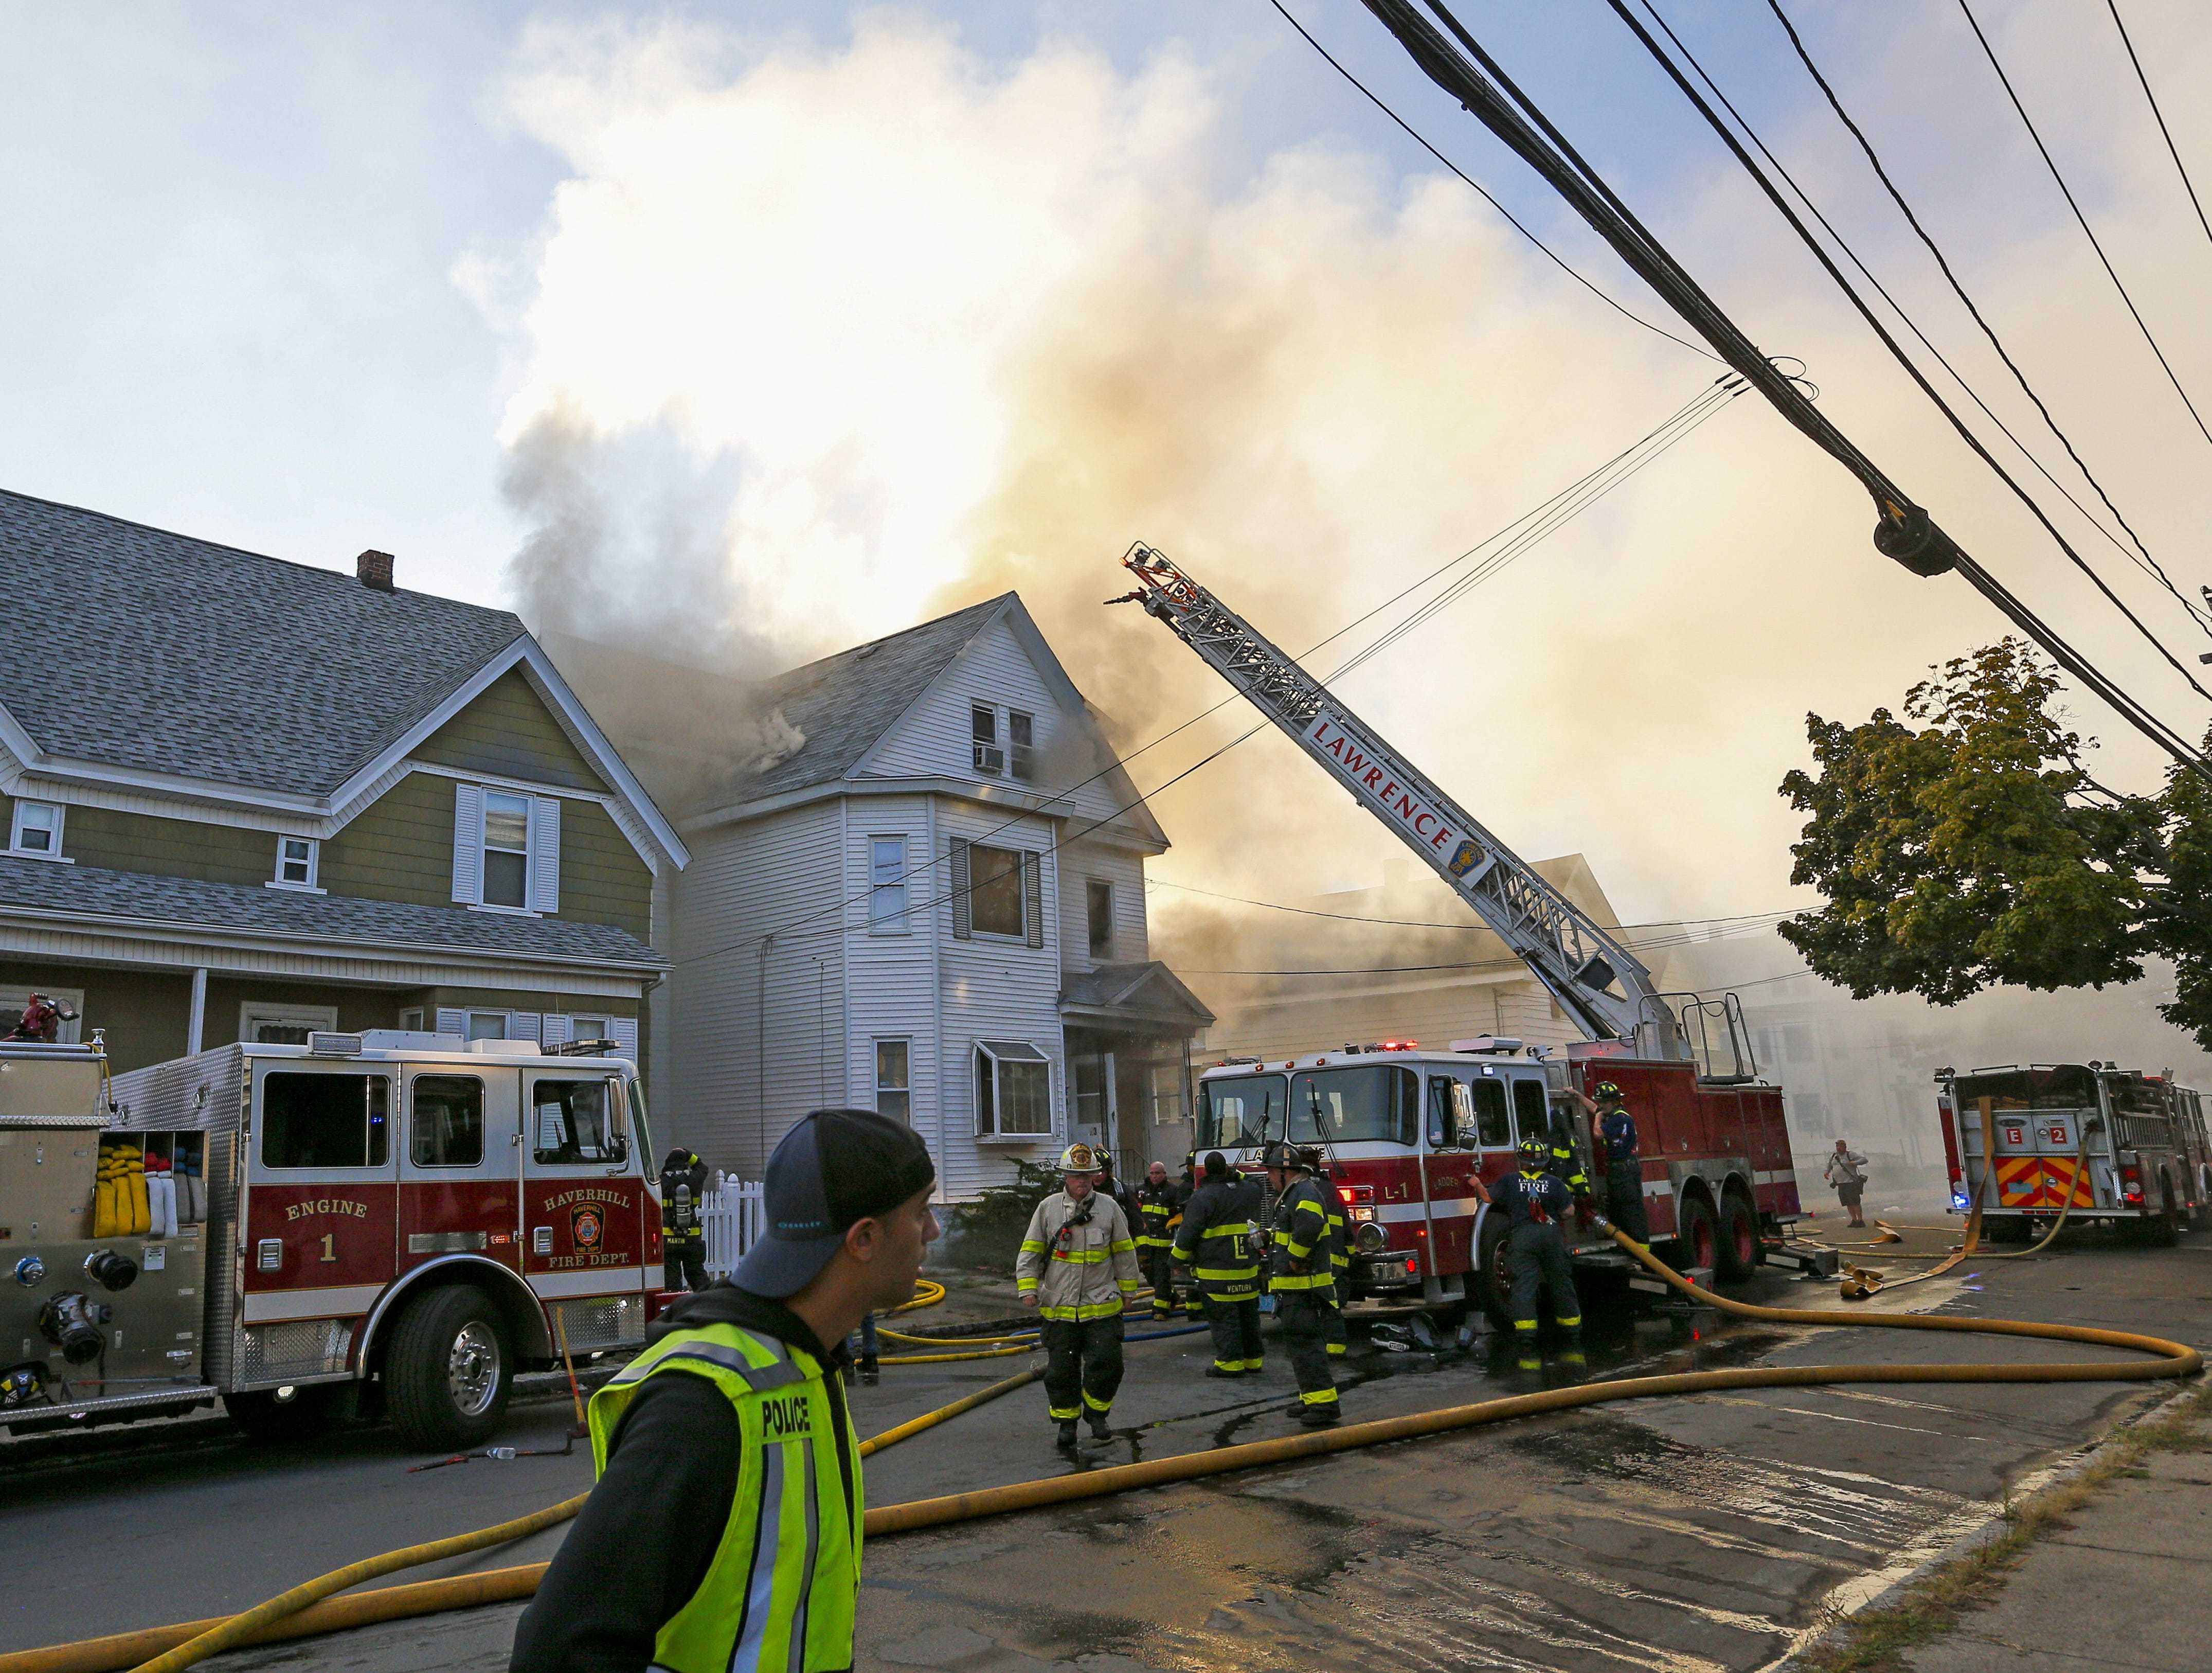 Sept. 13, 2018: Firefighters battle a fire in a house in Lawrence, Mass. A series of reported gas explosions in towns north of Boston set homes ablaze and forced mandatory evacuation for residents.